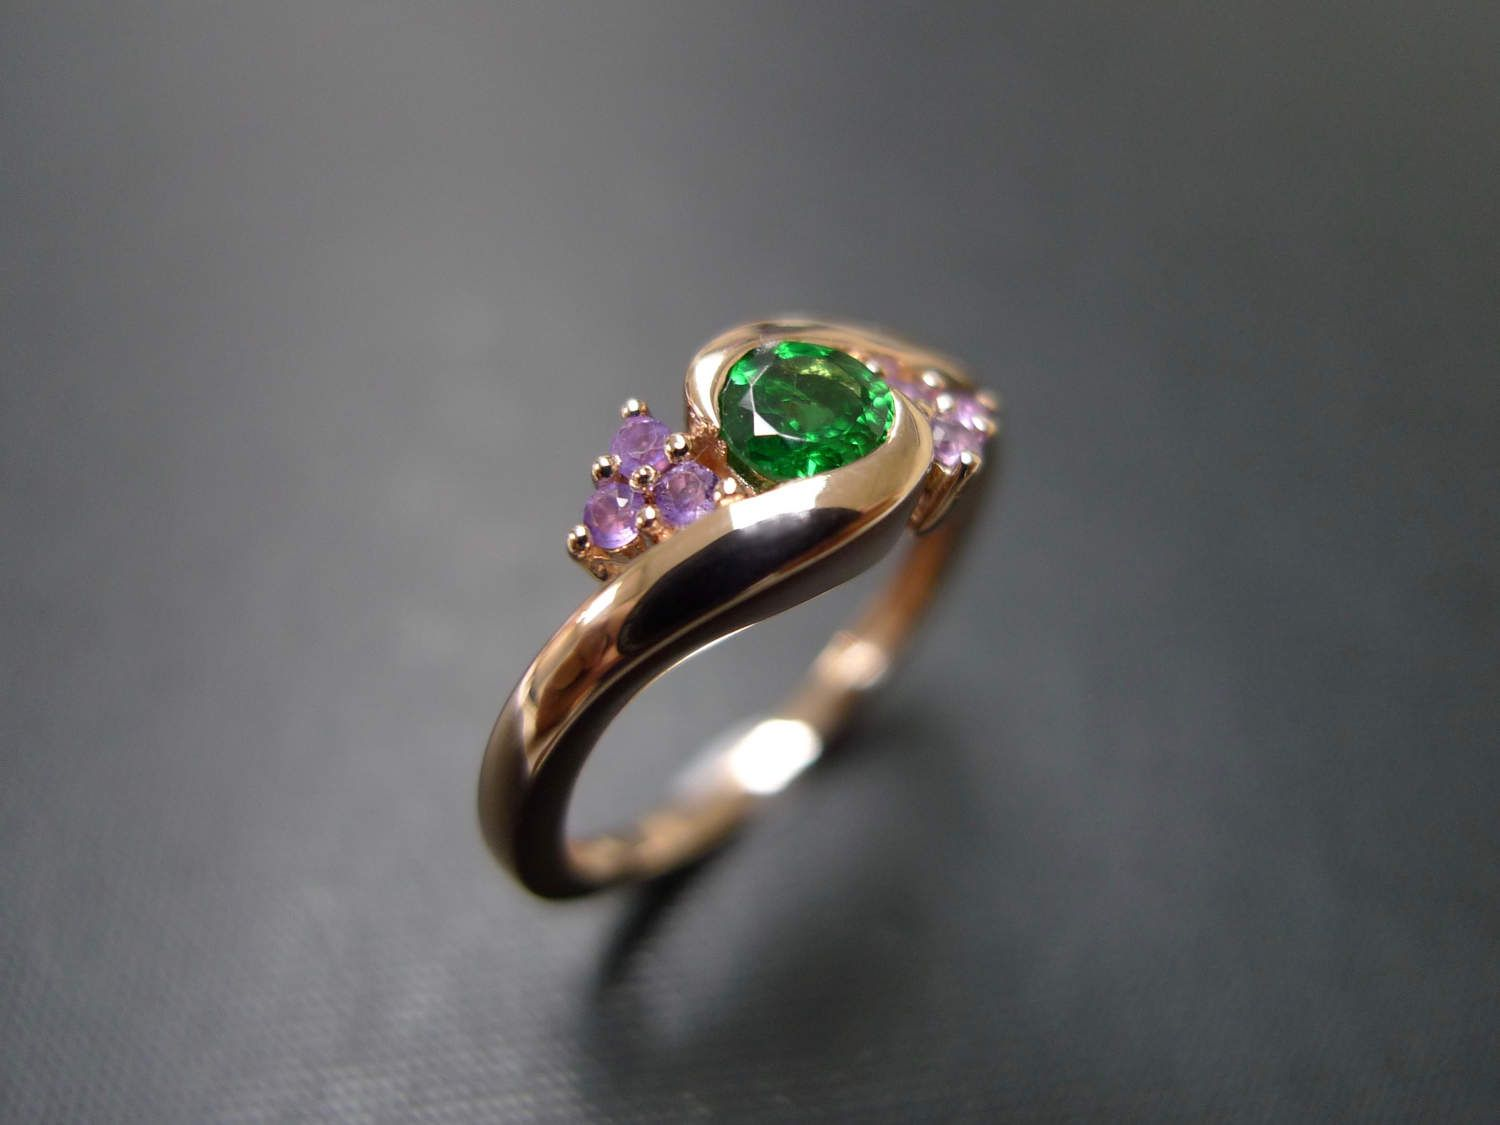 rings wedding with gold jewelry cart to yg nl eternity in emerald green round yellow gemstone cut bands add